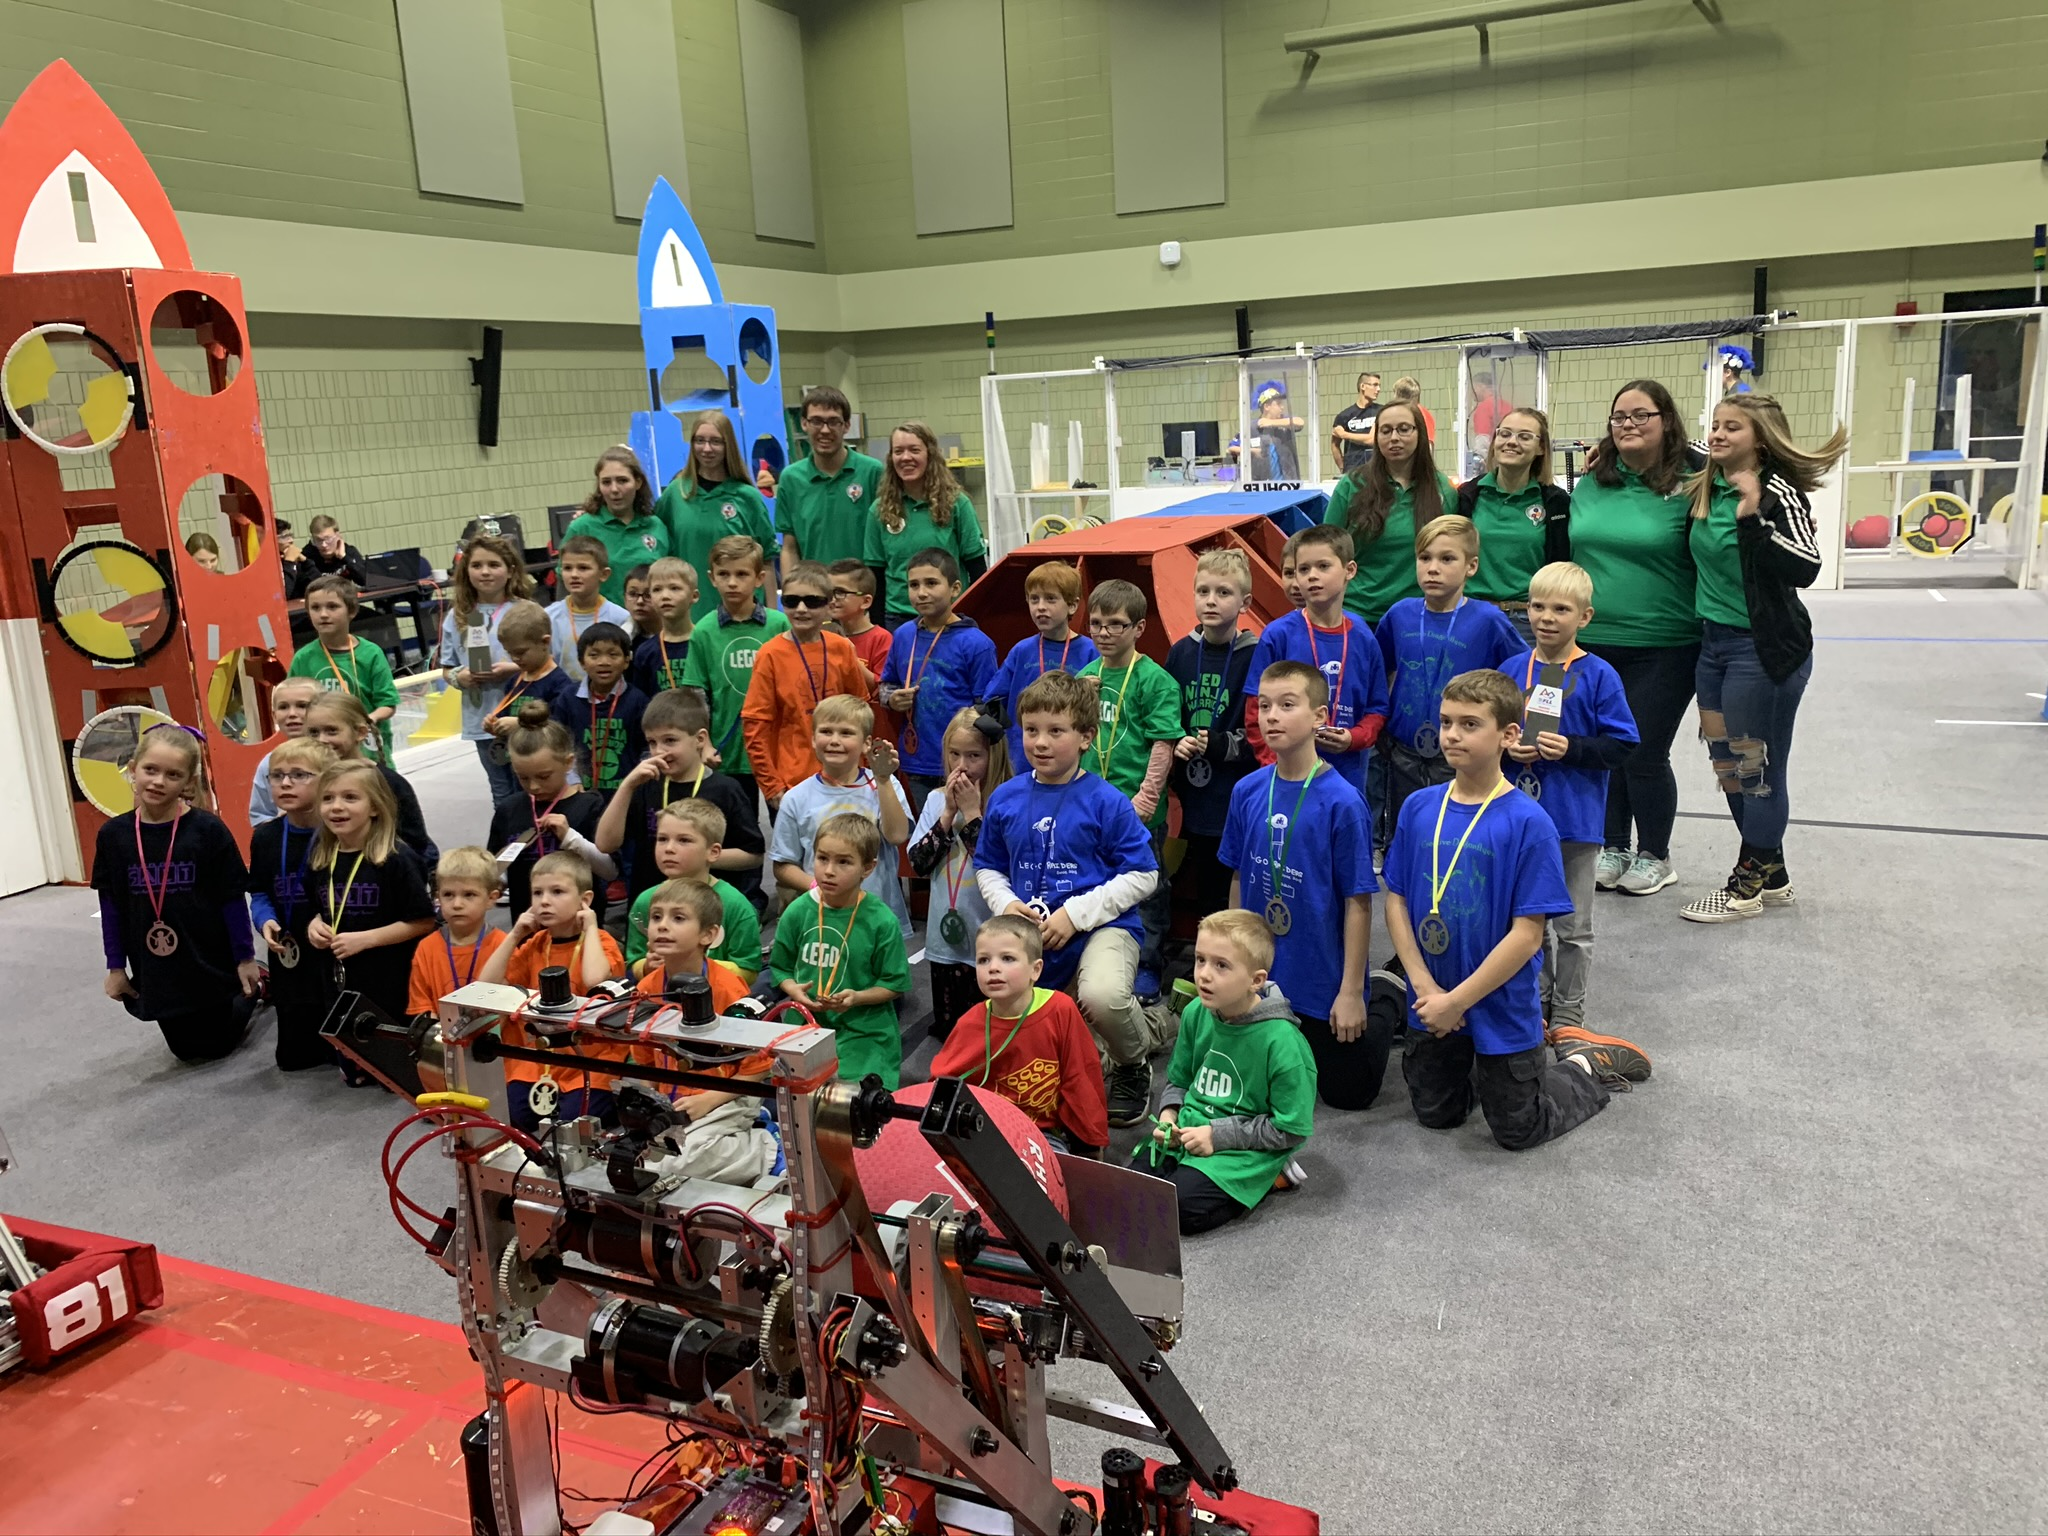 FIRST FLL Jr. Expo